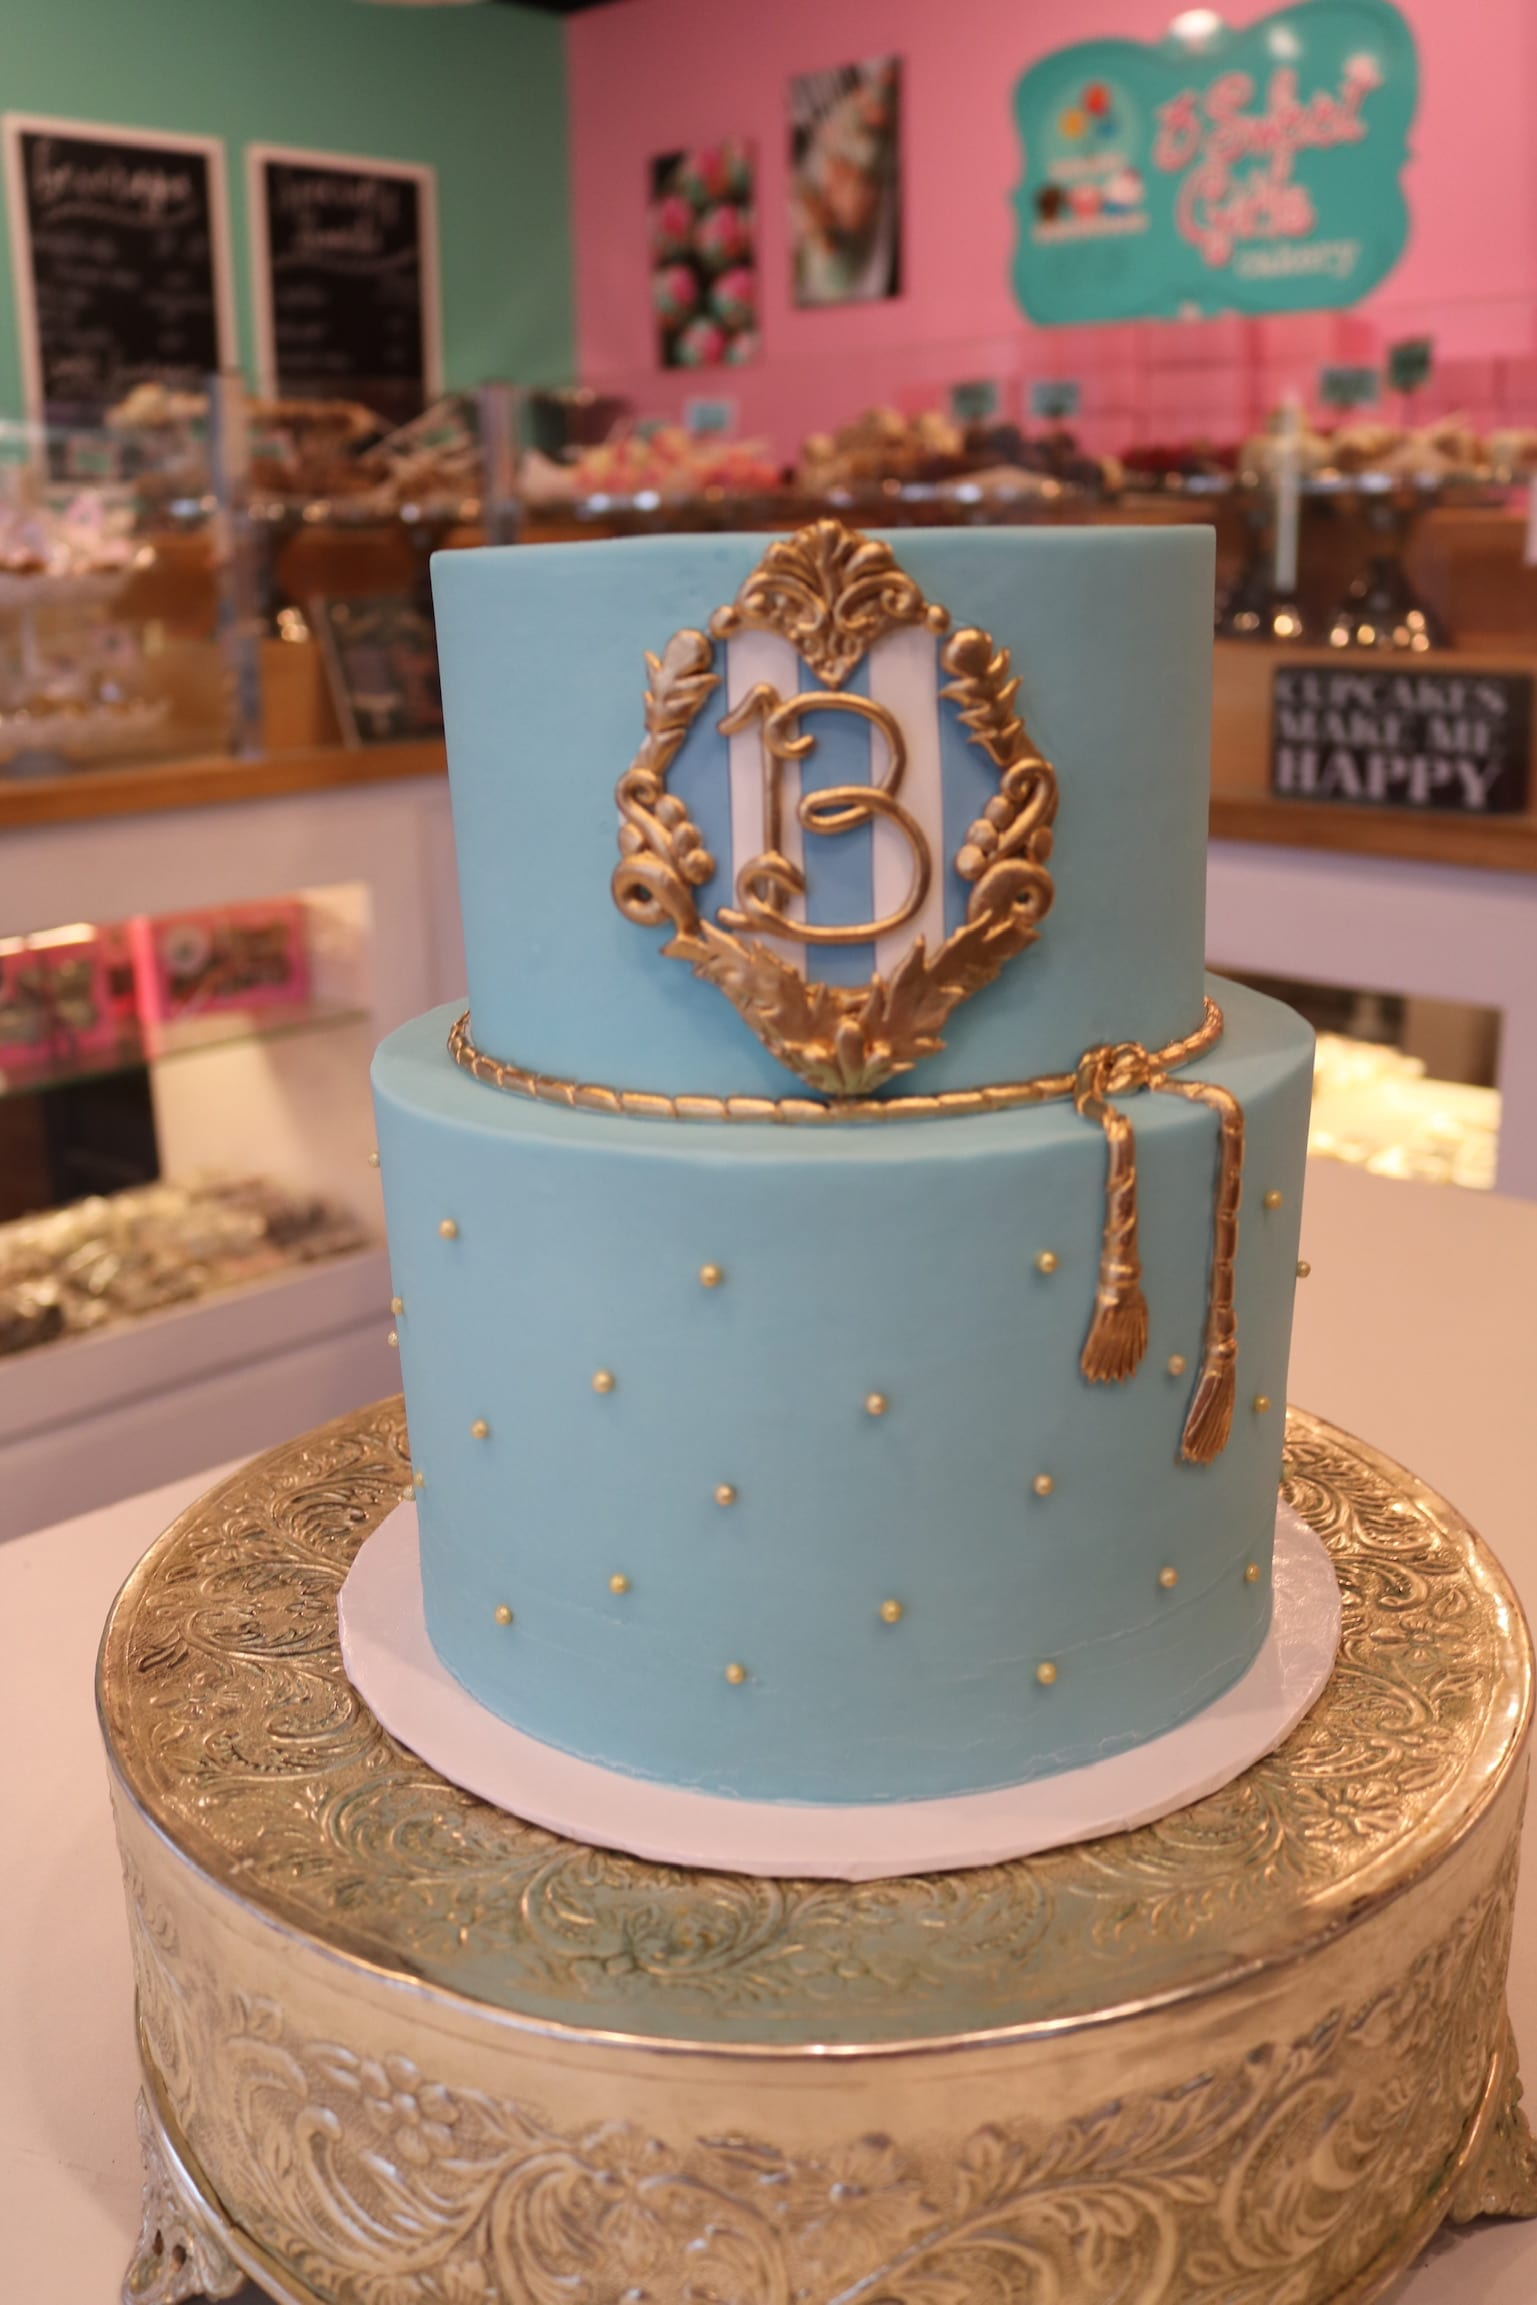 2 Tier Blue Cake with Gold Pearls and Monogram | 3 Sweet Girls Cakery